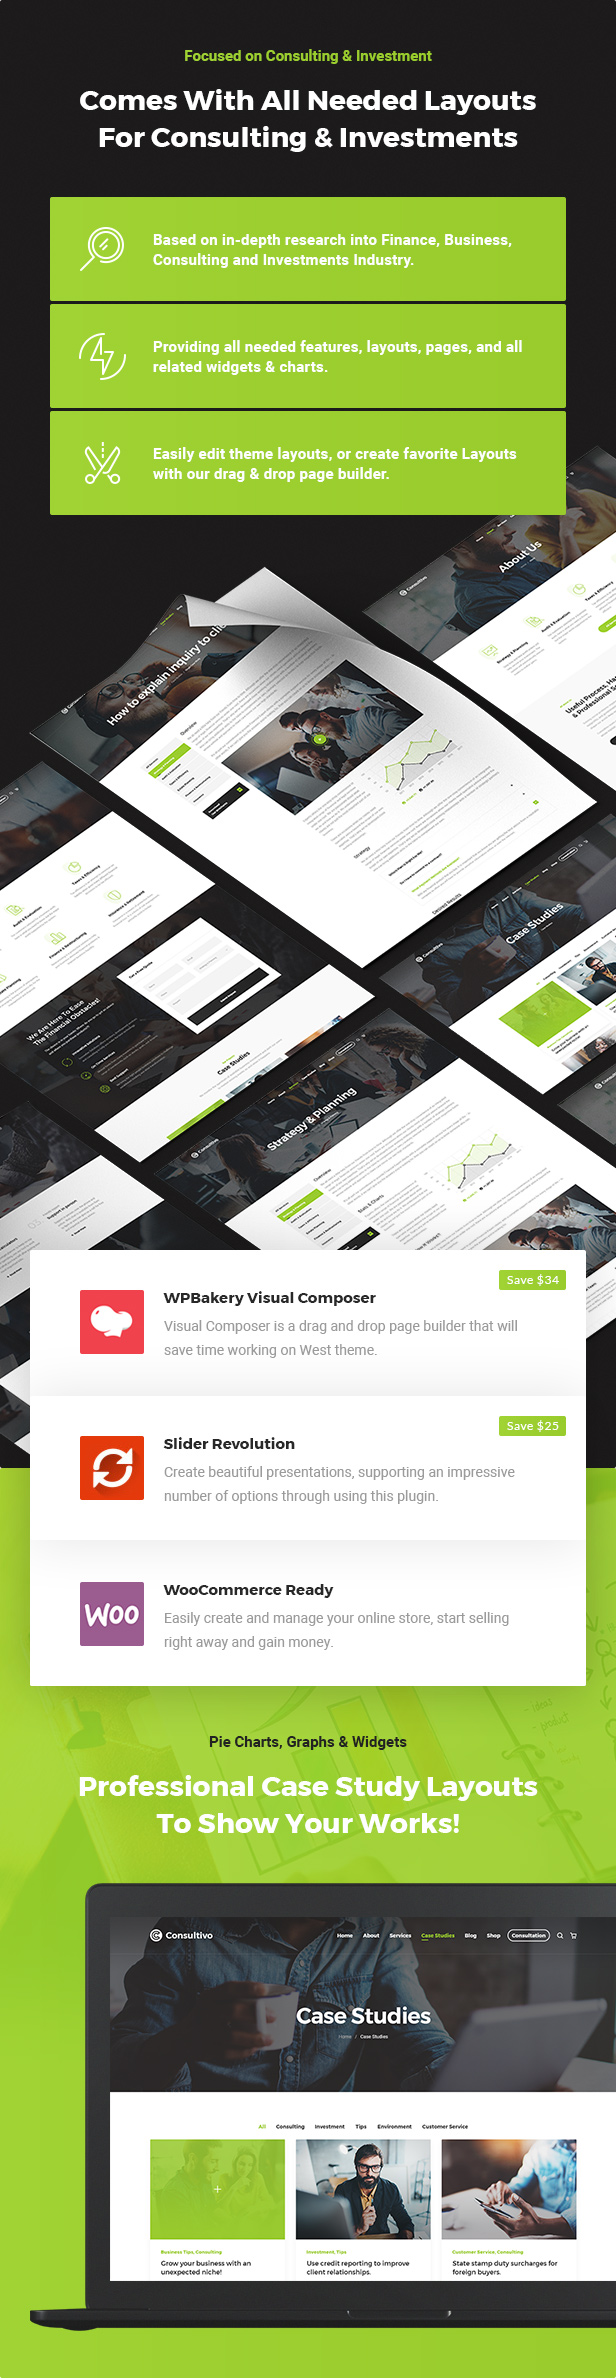 Consultivo-Business Consulting and Investment WordPress Theme-6